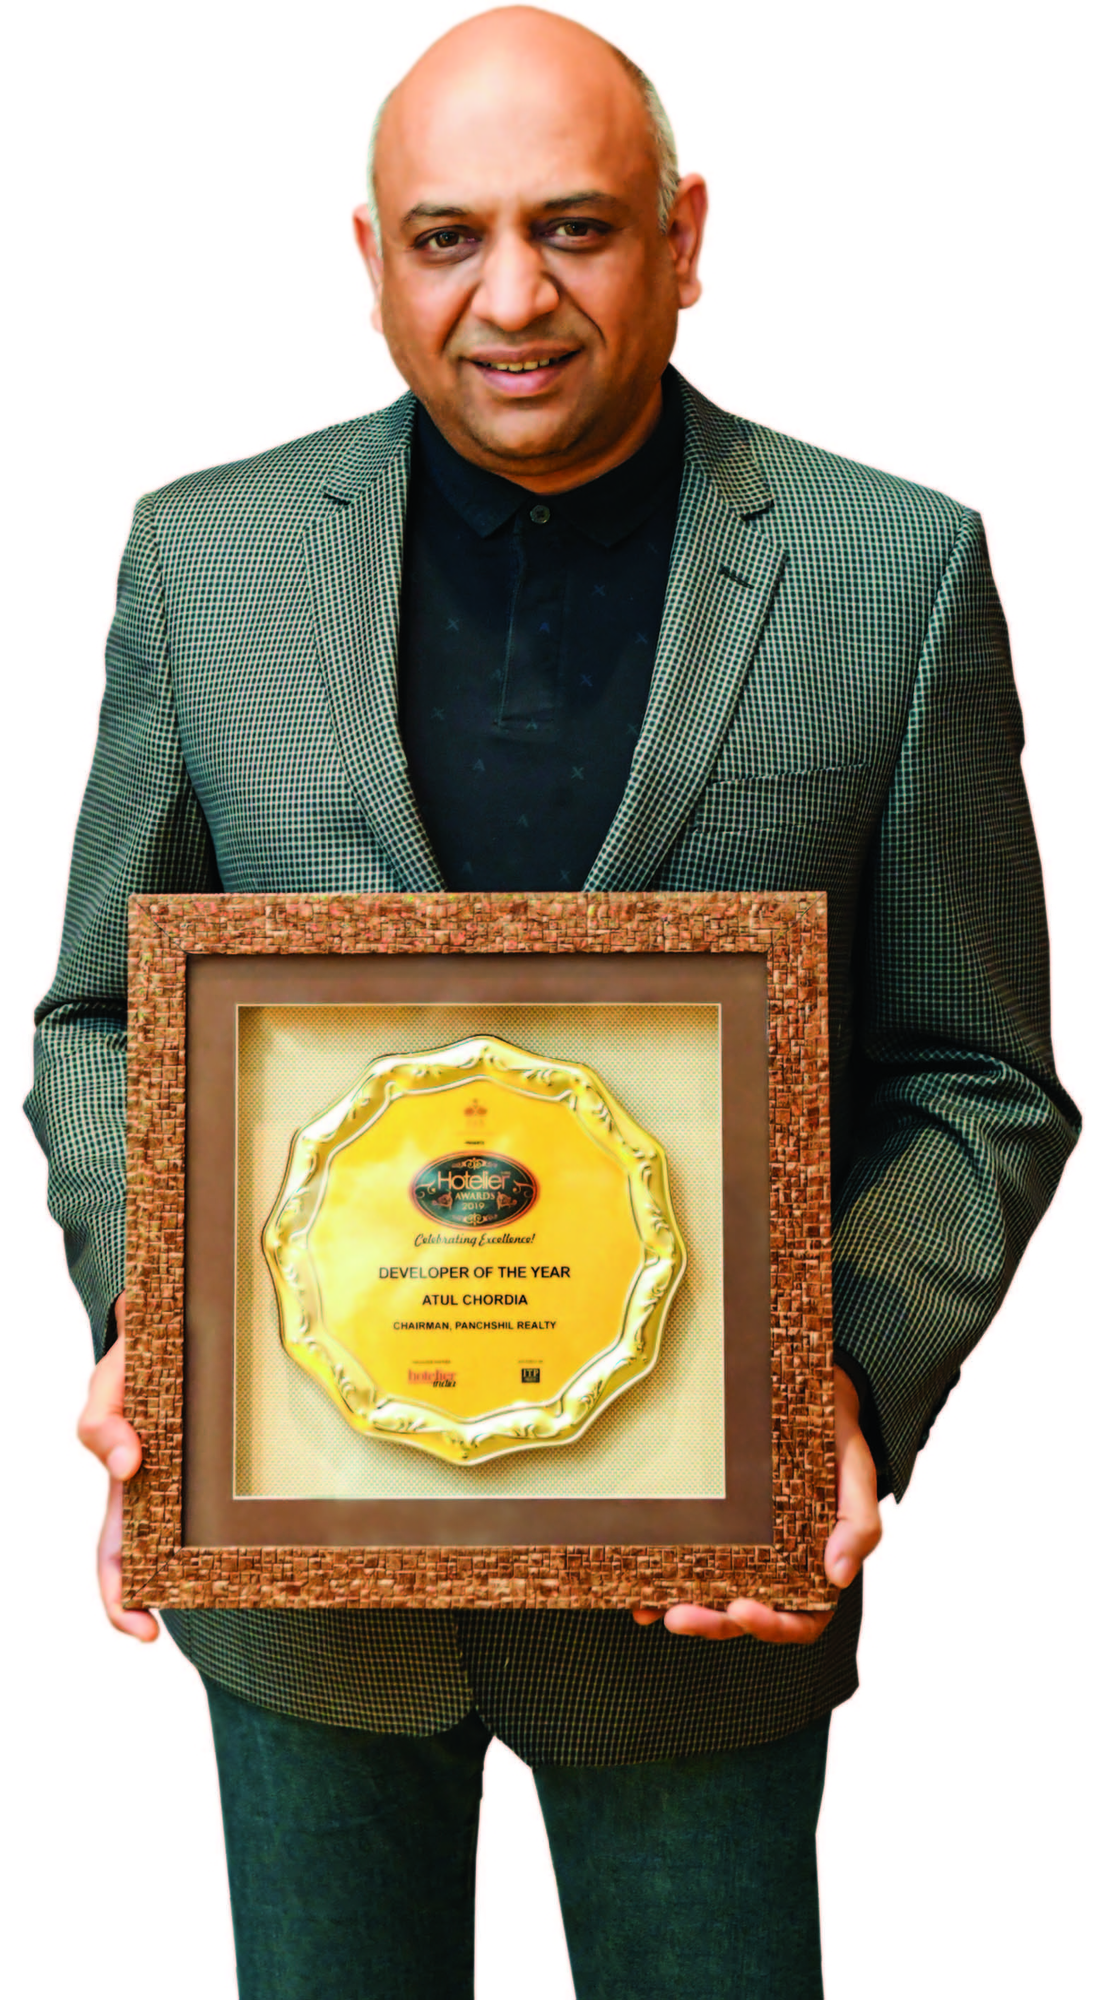 Atul Chordia, Panschil Realty, Realty industry, Ritz-Carlton Pune, 24-carat hospitality, 11th edition Hotelier India Awards, Developer of the Year, Hotelier Awards